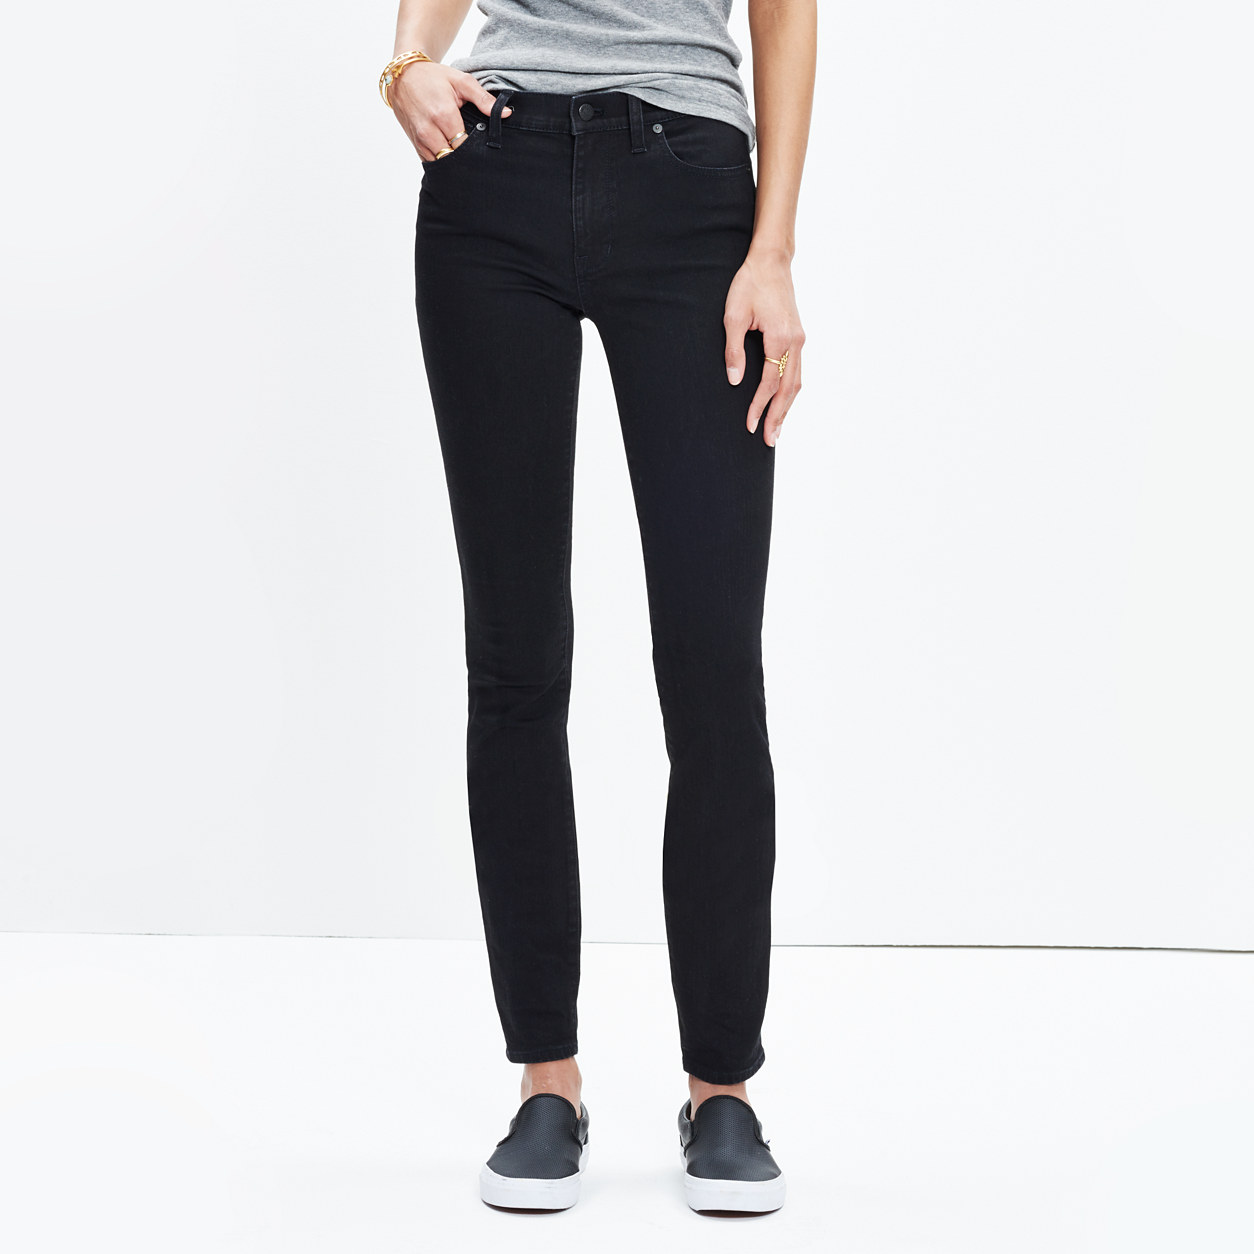 "9"" High-Rise Skinny Jeans in Lunar : high-rise skinny jeans 